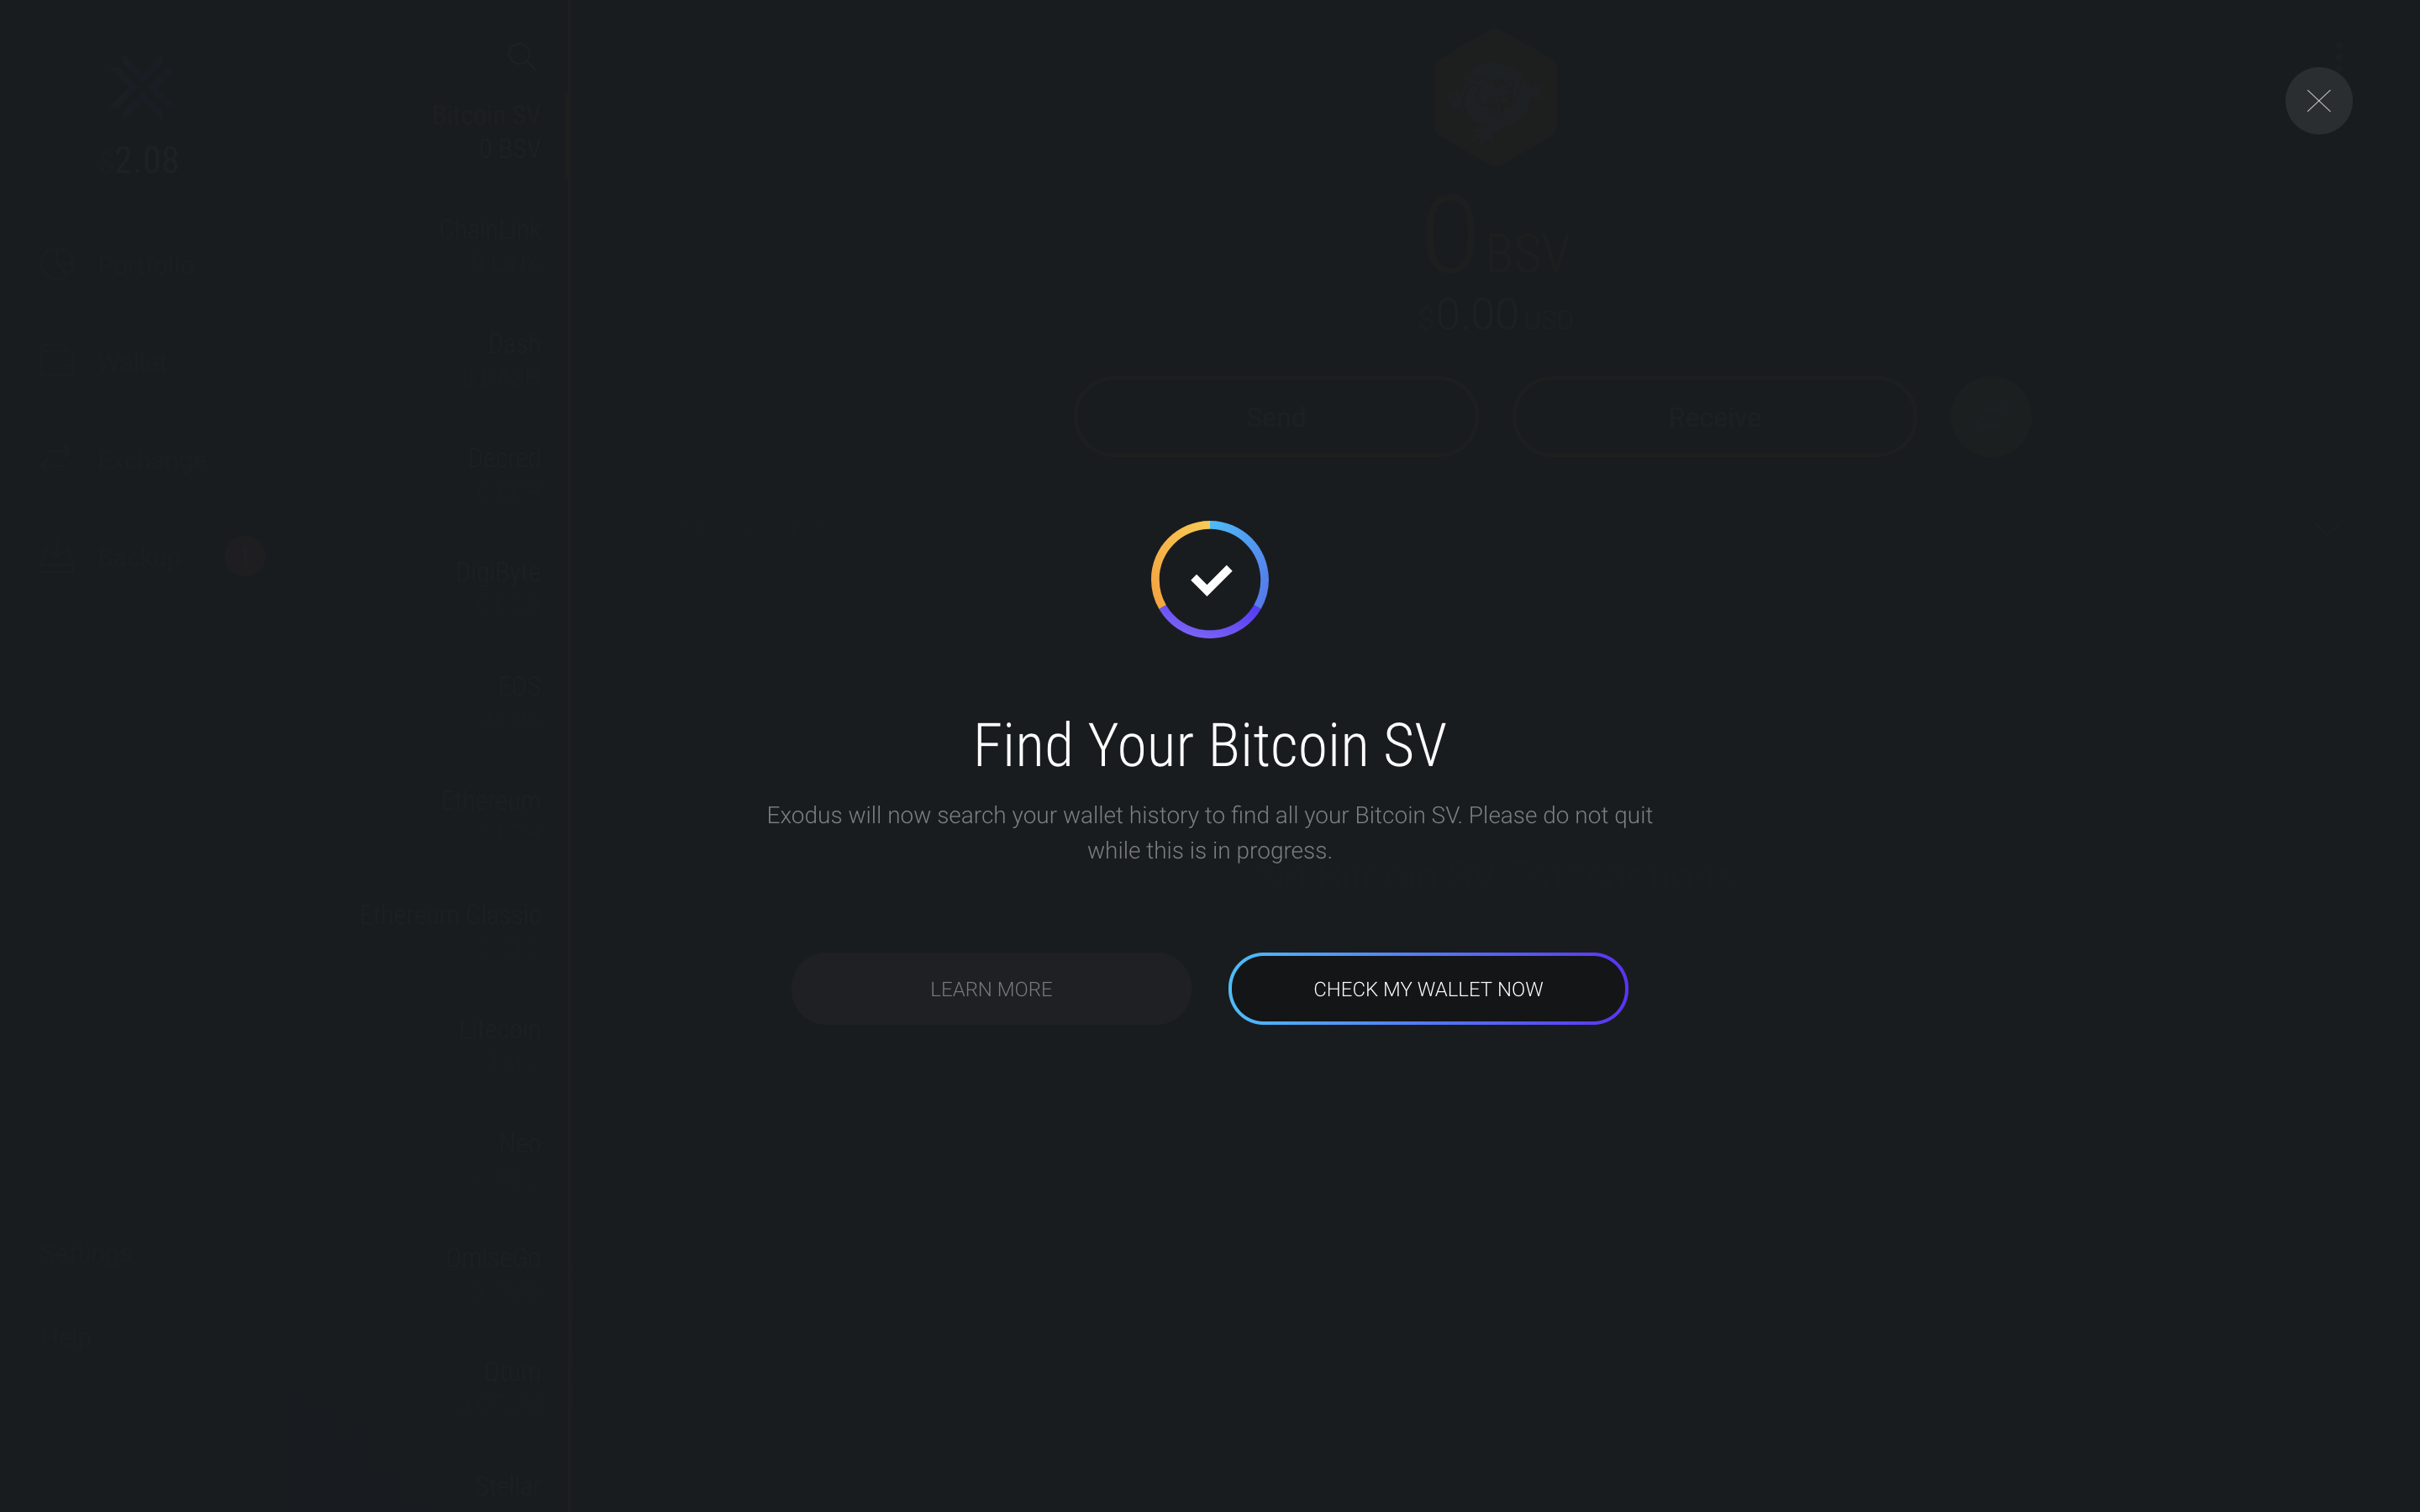 Exodus Wallet - Find Your Bitcoin SV